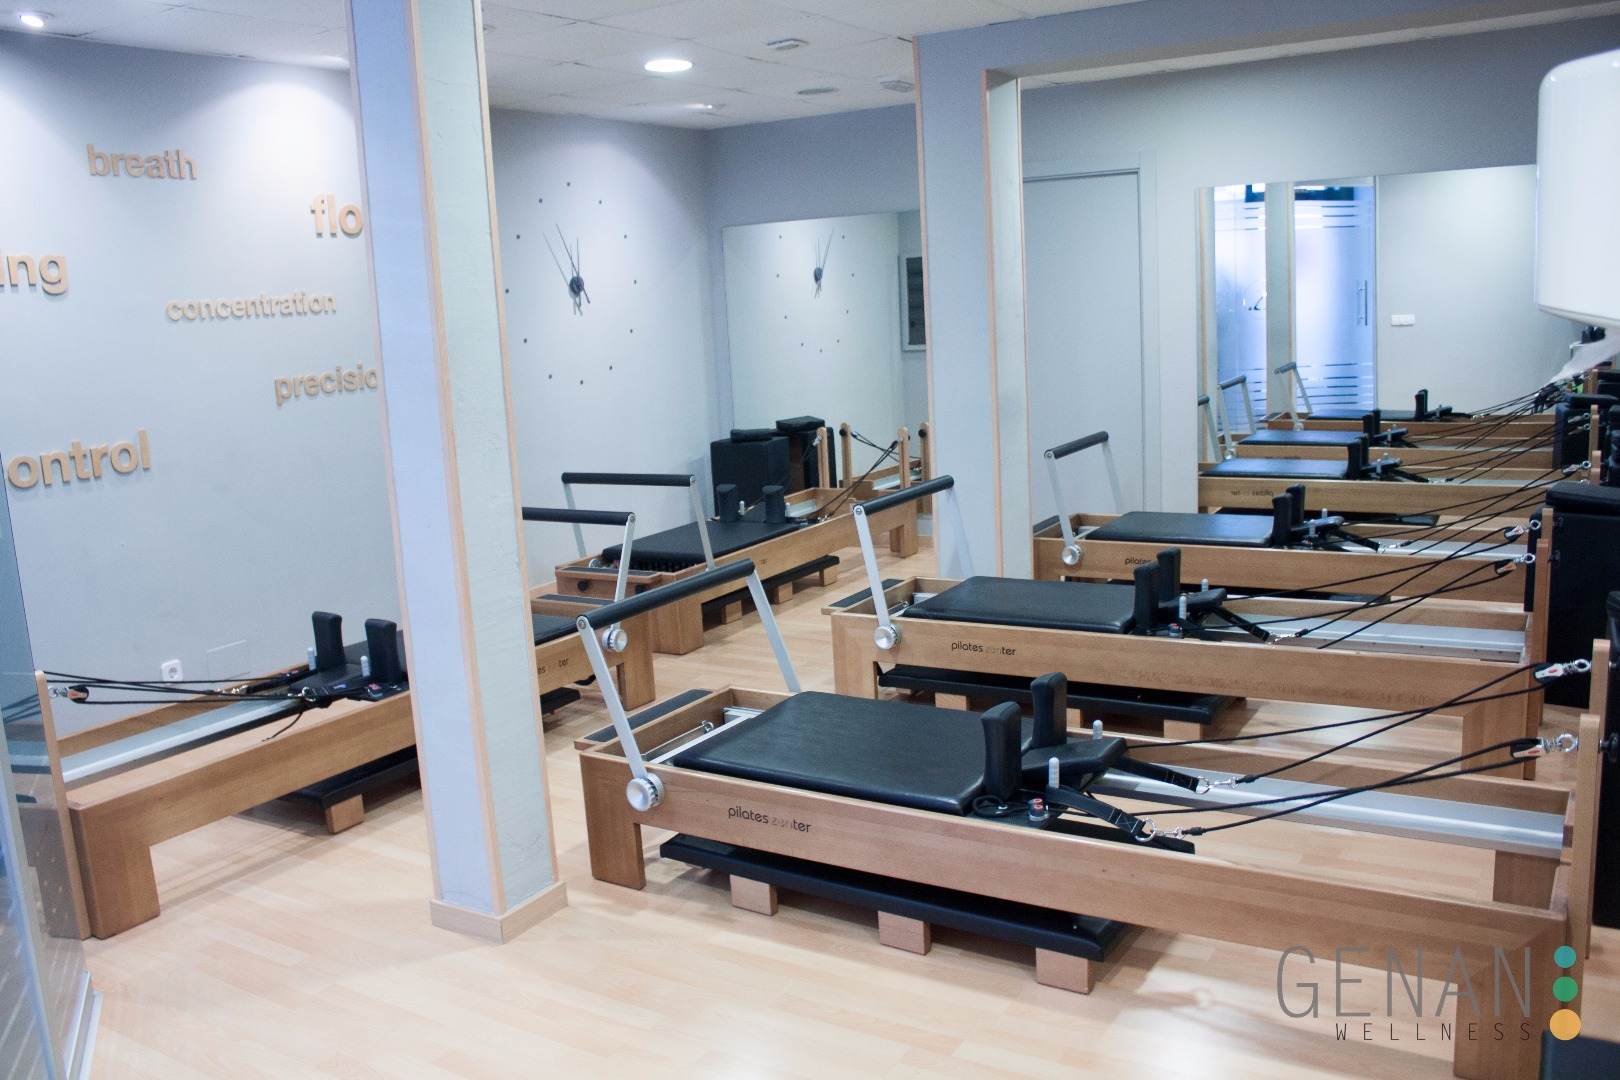 Picture 0 Deals for Gym Genan Wellness Barcelona